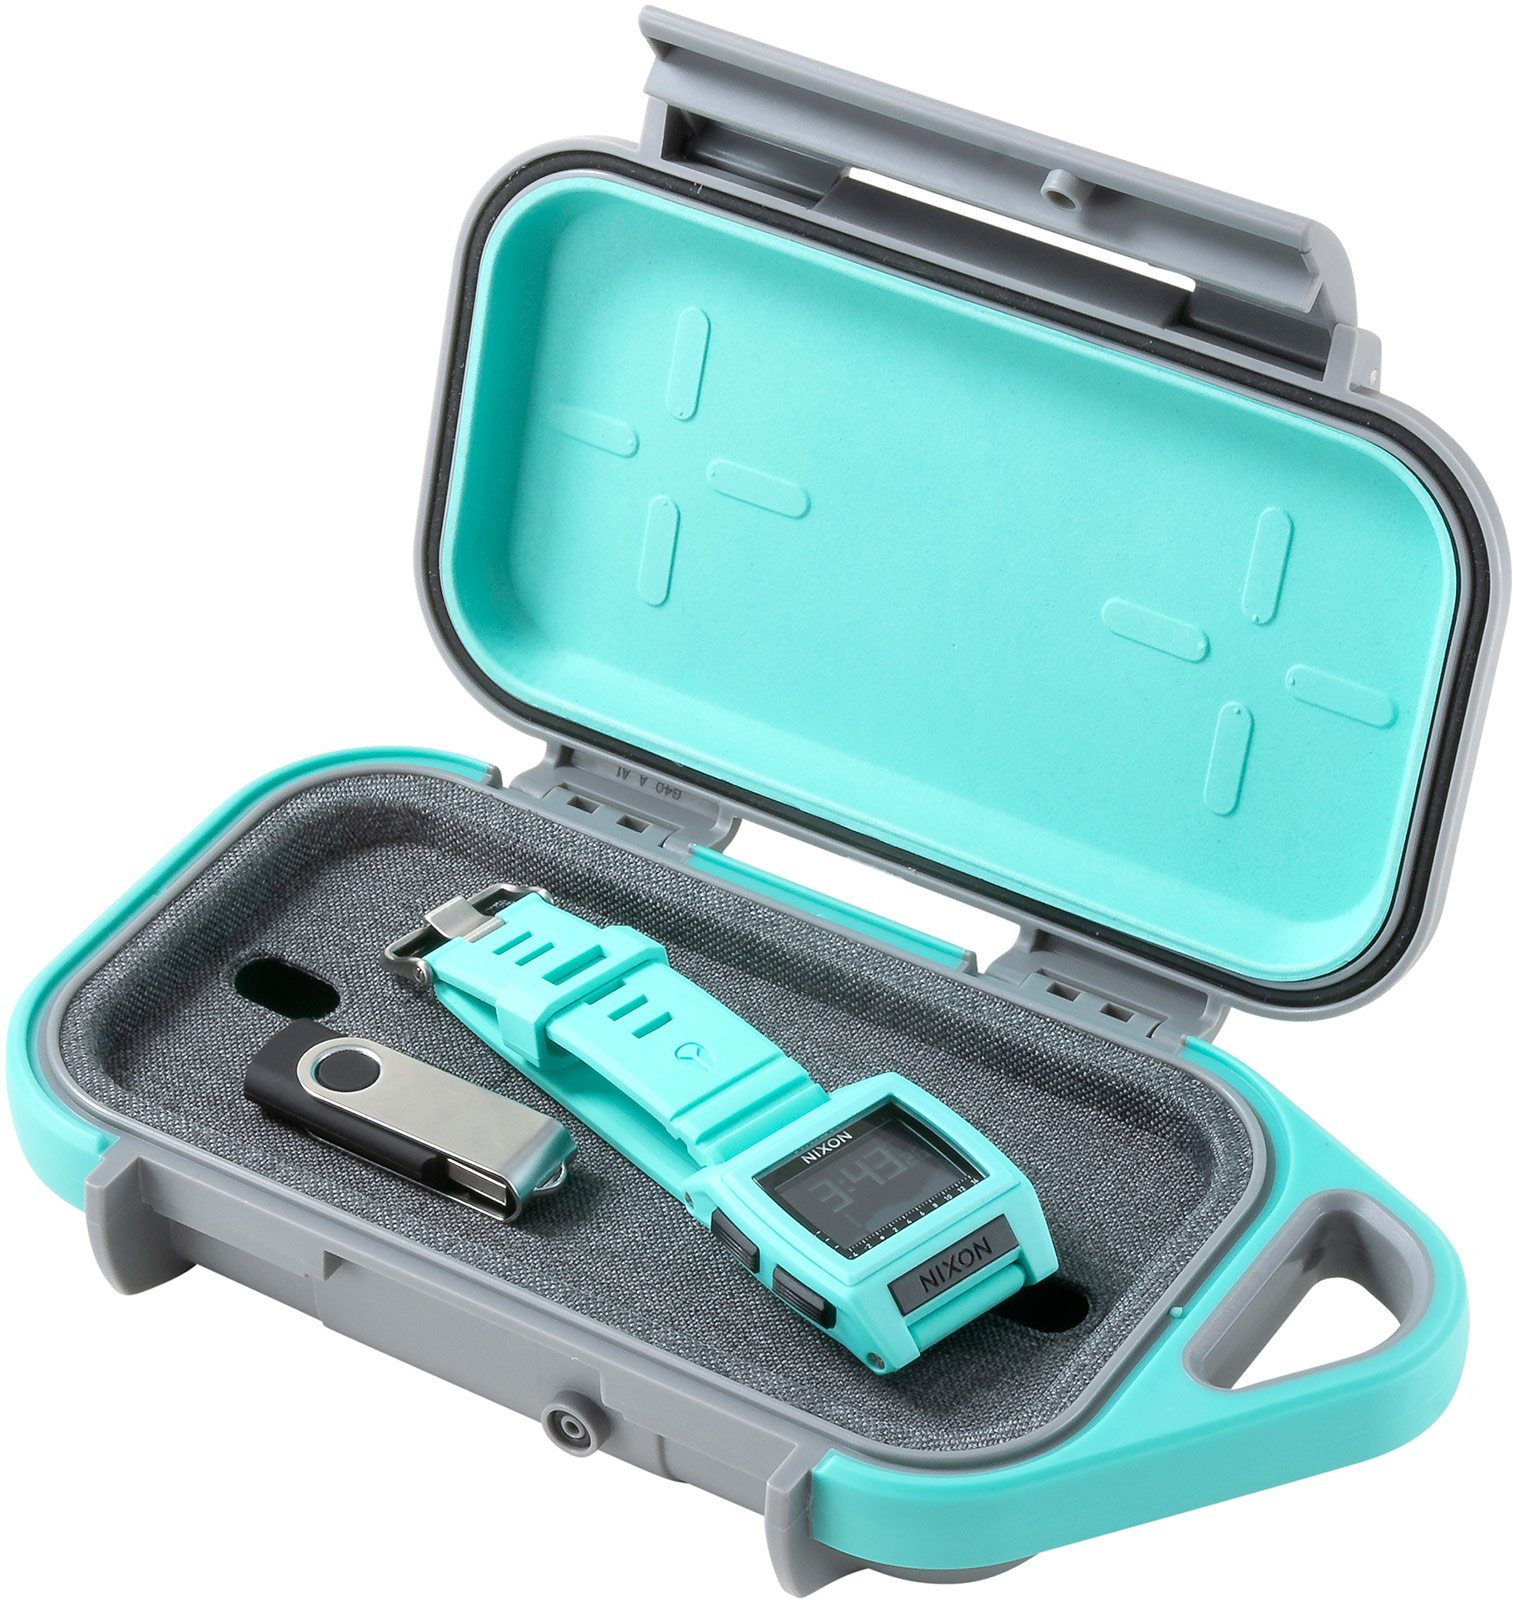 pelican g40 teal smart watch usb cable case